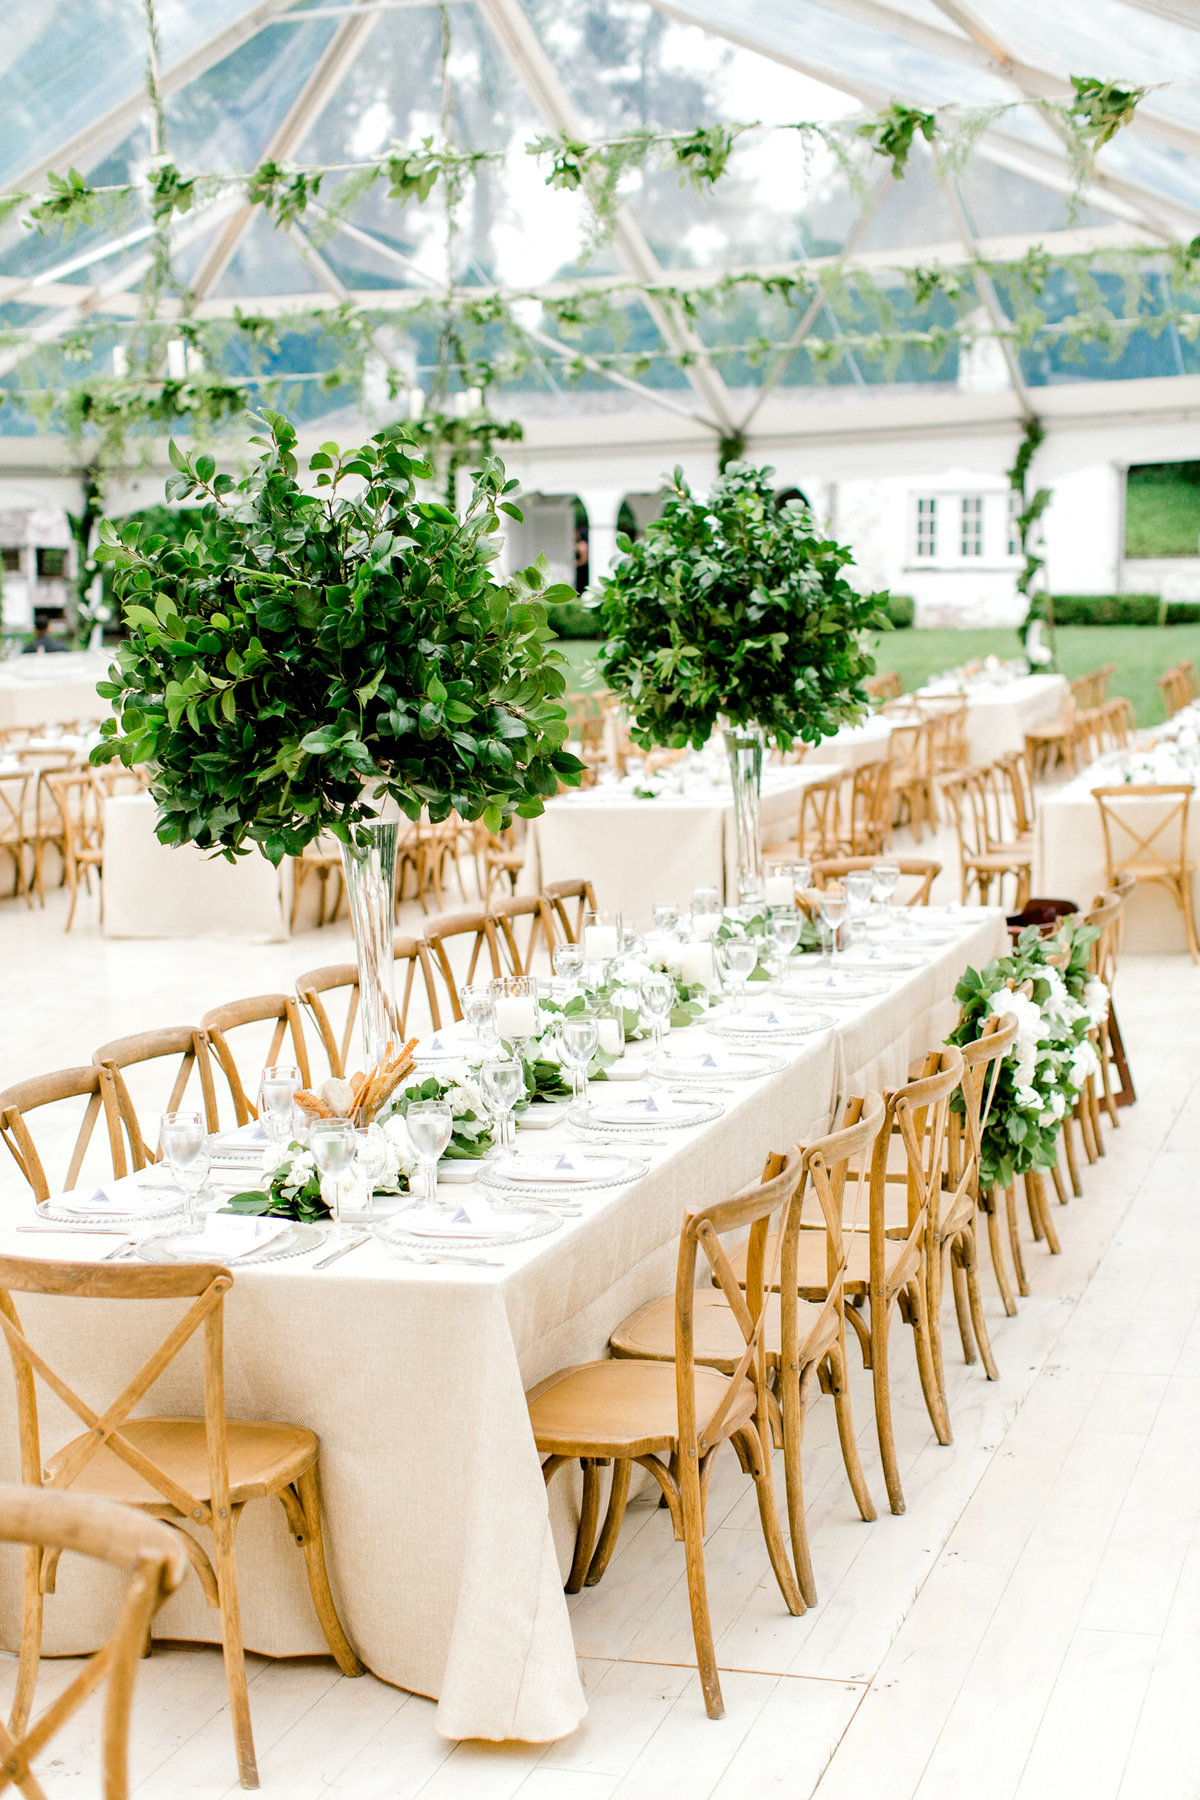 New-York-Private-Estate-Luxury-Tent-Wedding-Photo-Jessica-Haley-48